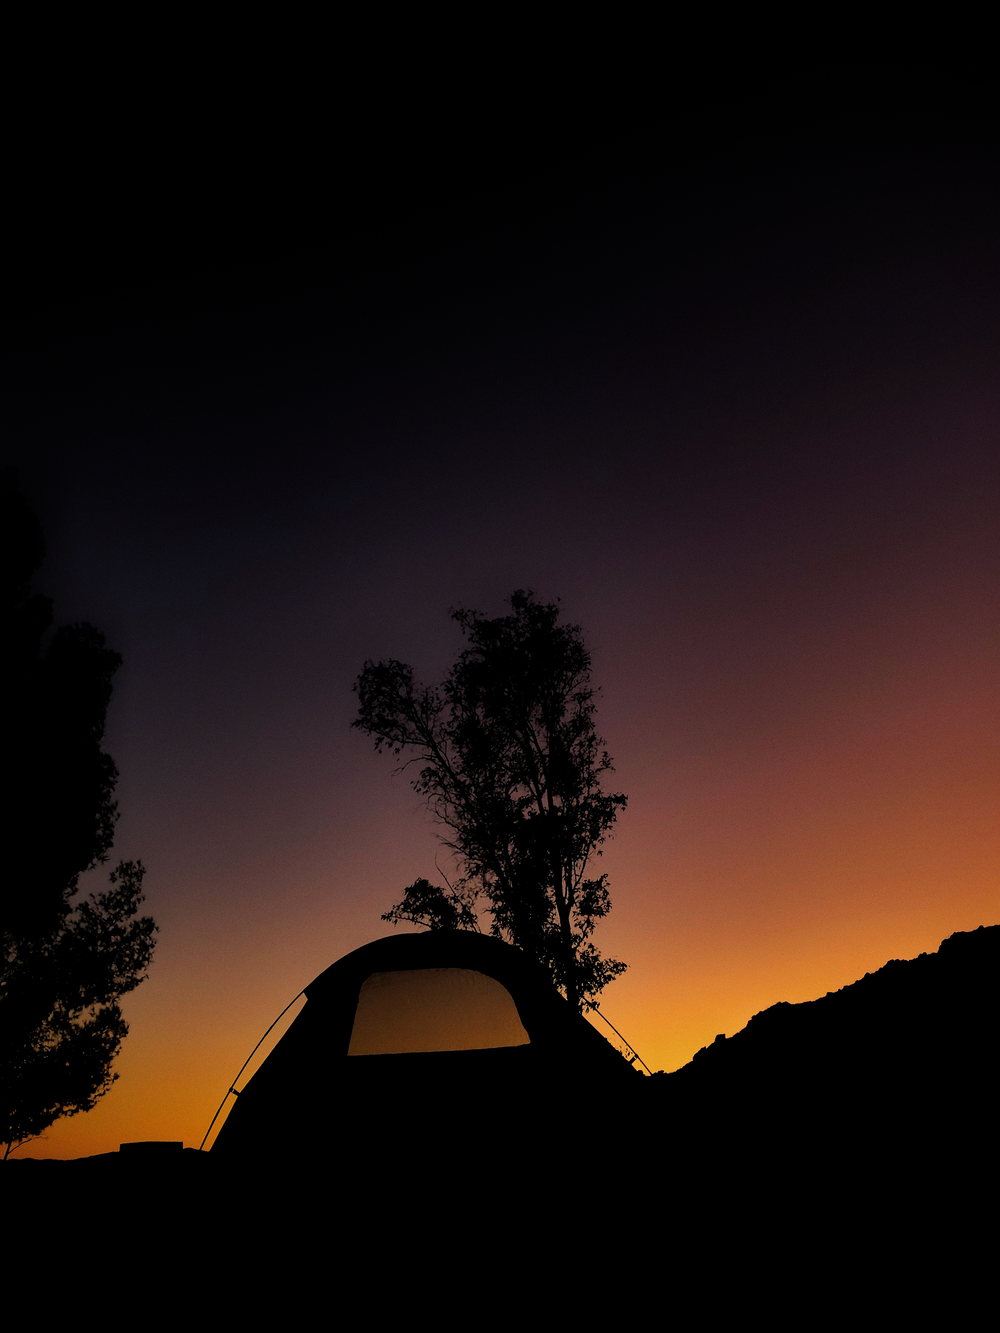 silhouette of tent under tree during golden hour